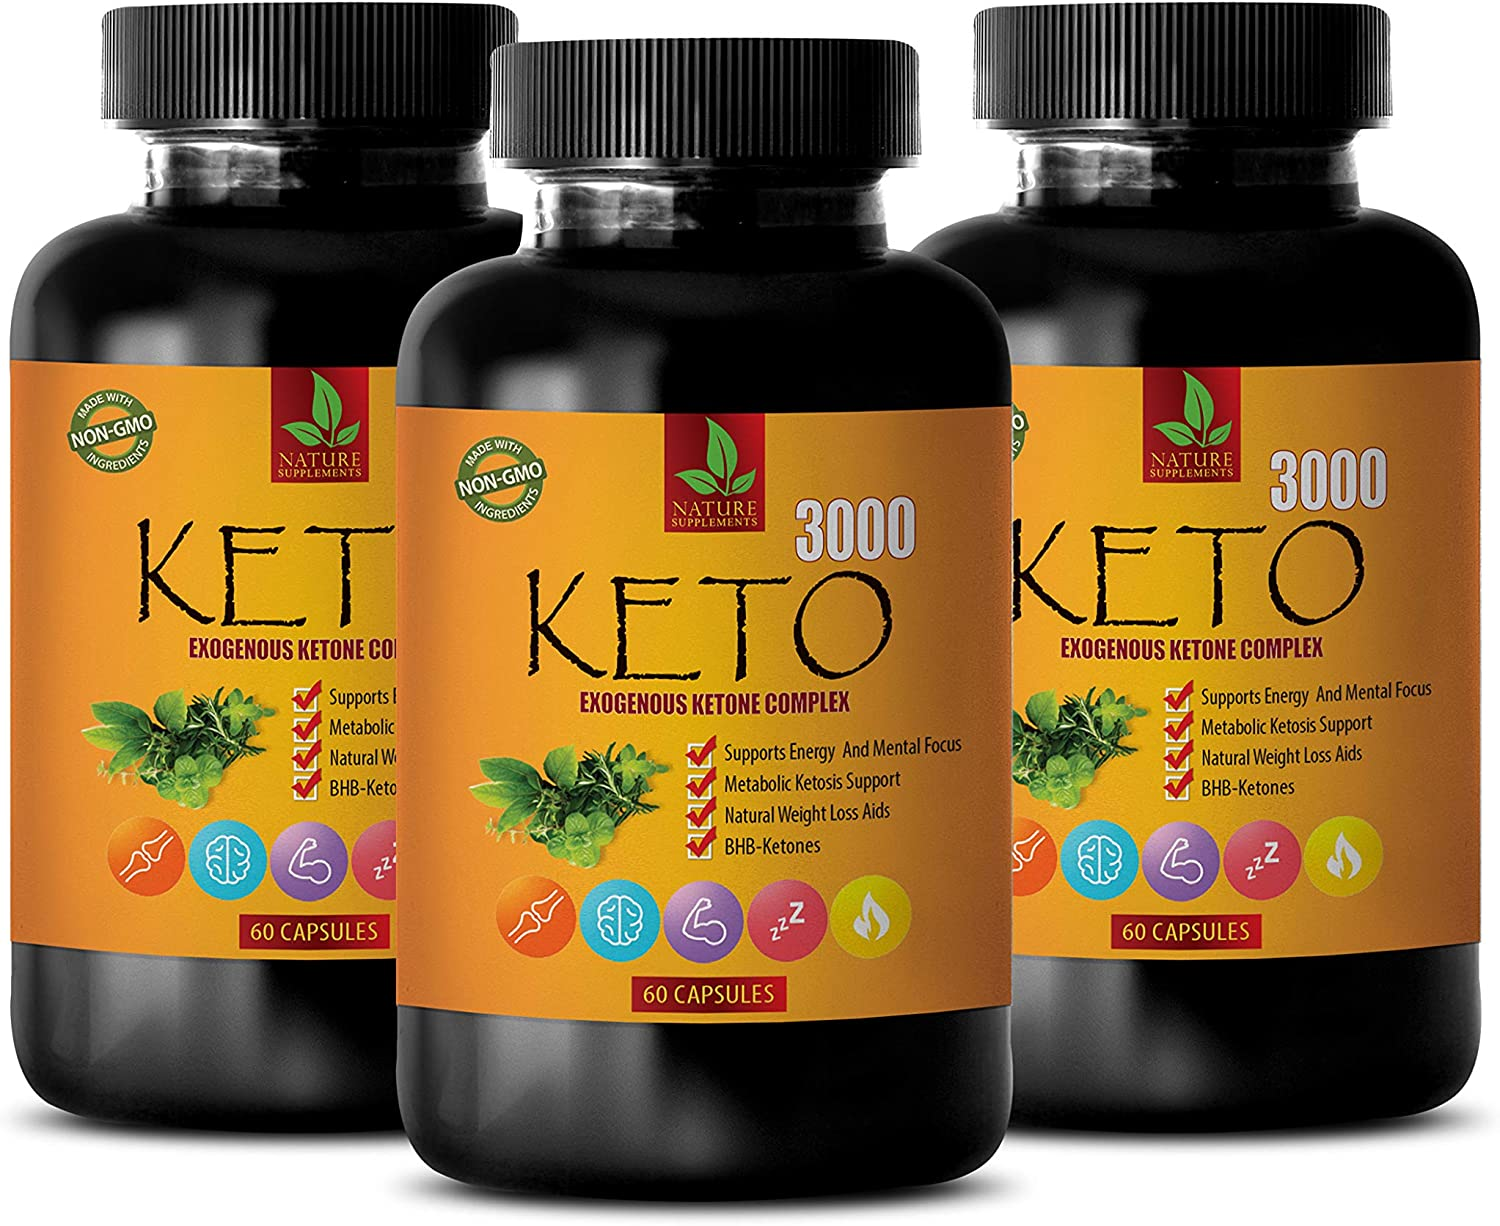 Weight Loss Pills for Women Belly Fat - Ke EXOGENOUS 3000 Keto Surprise New mail order price